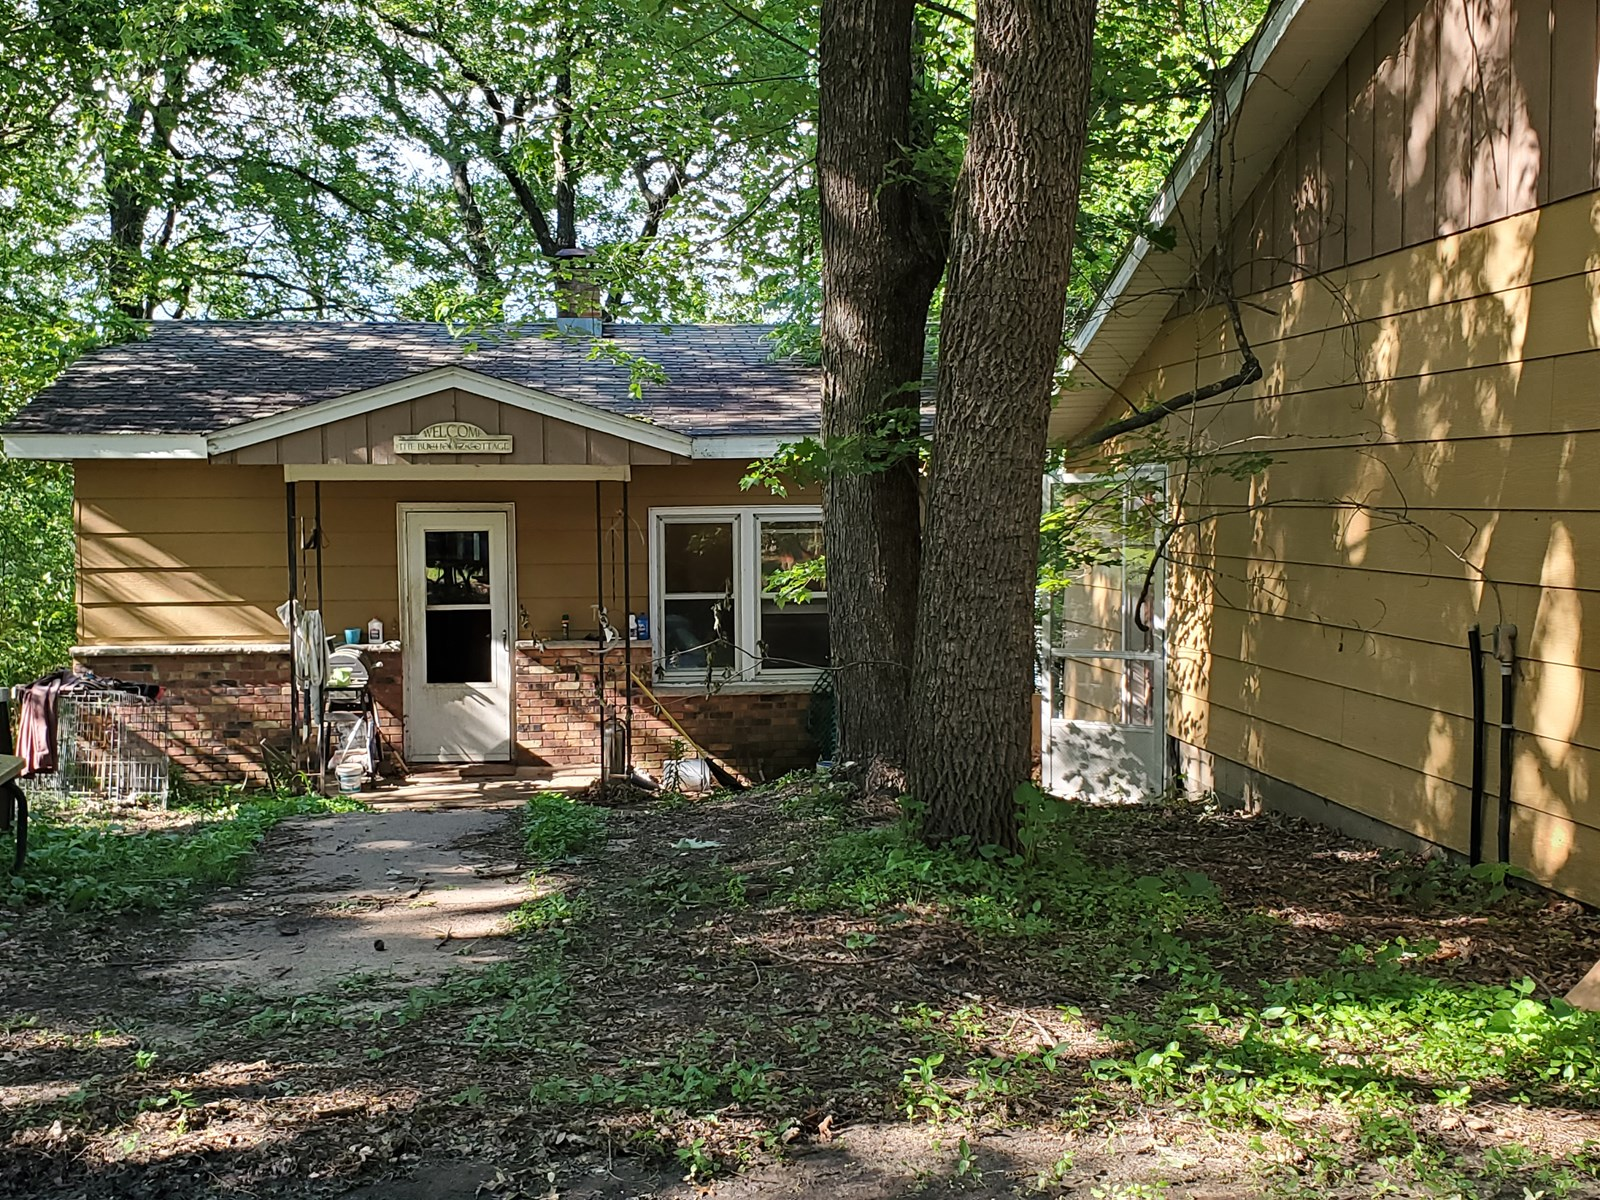 Home for Sale on Bass Lake in Waupaca, WI